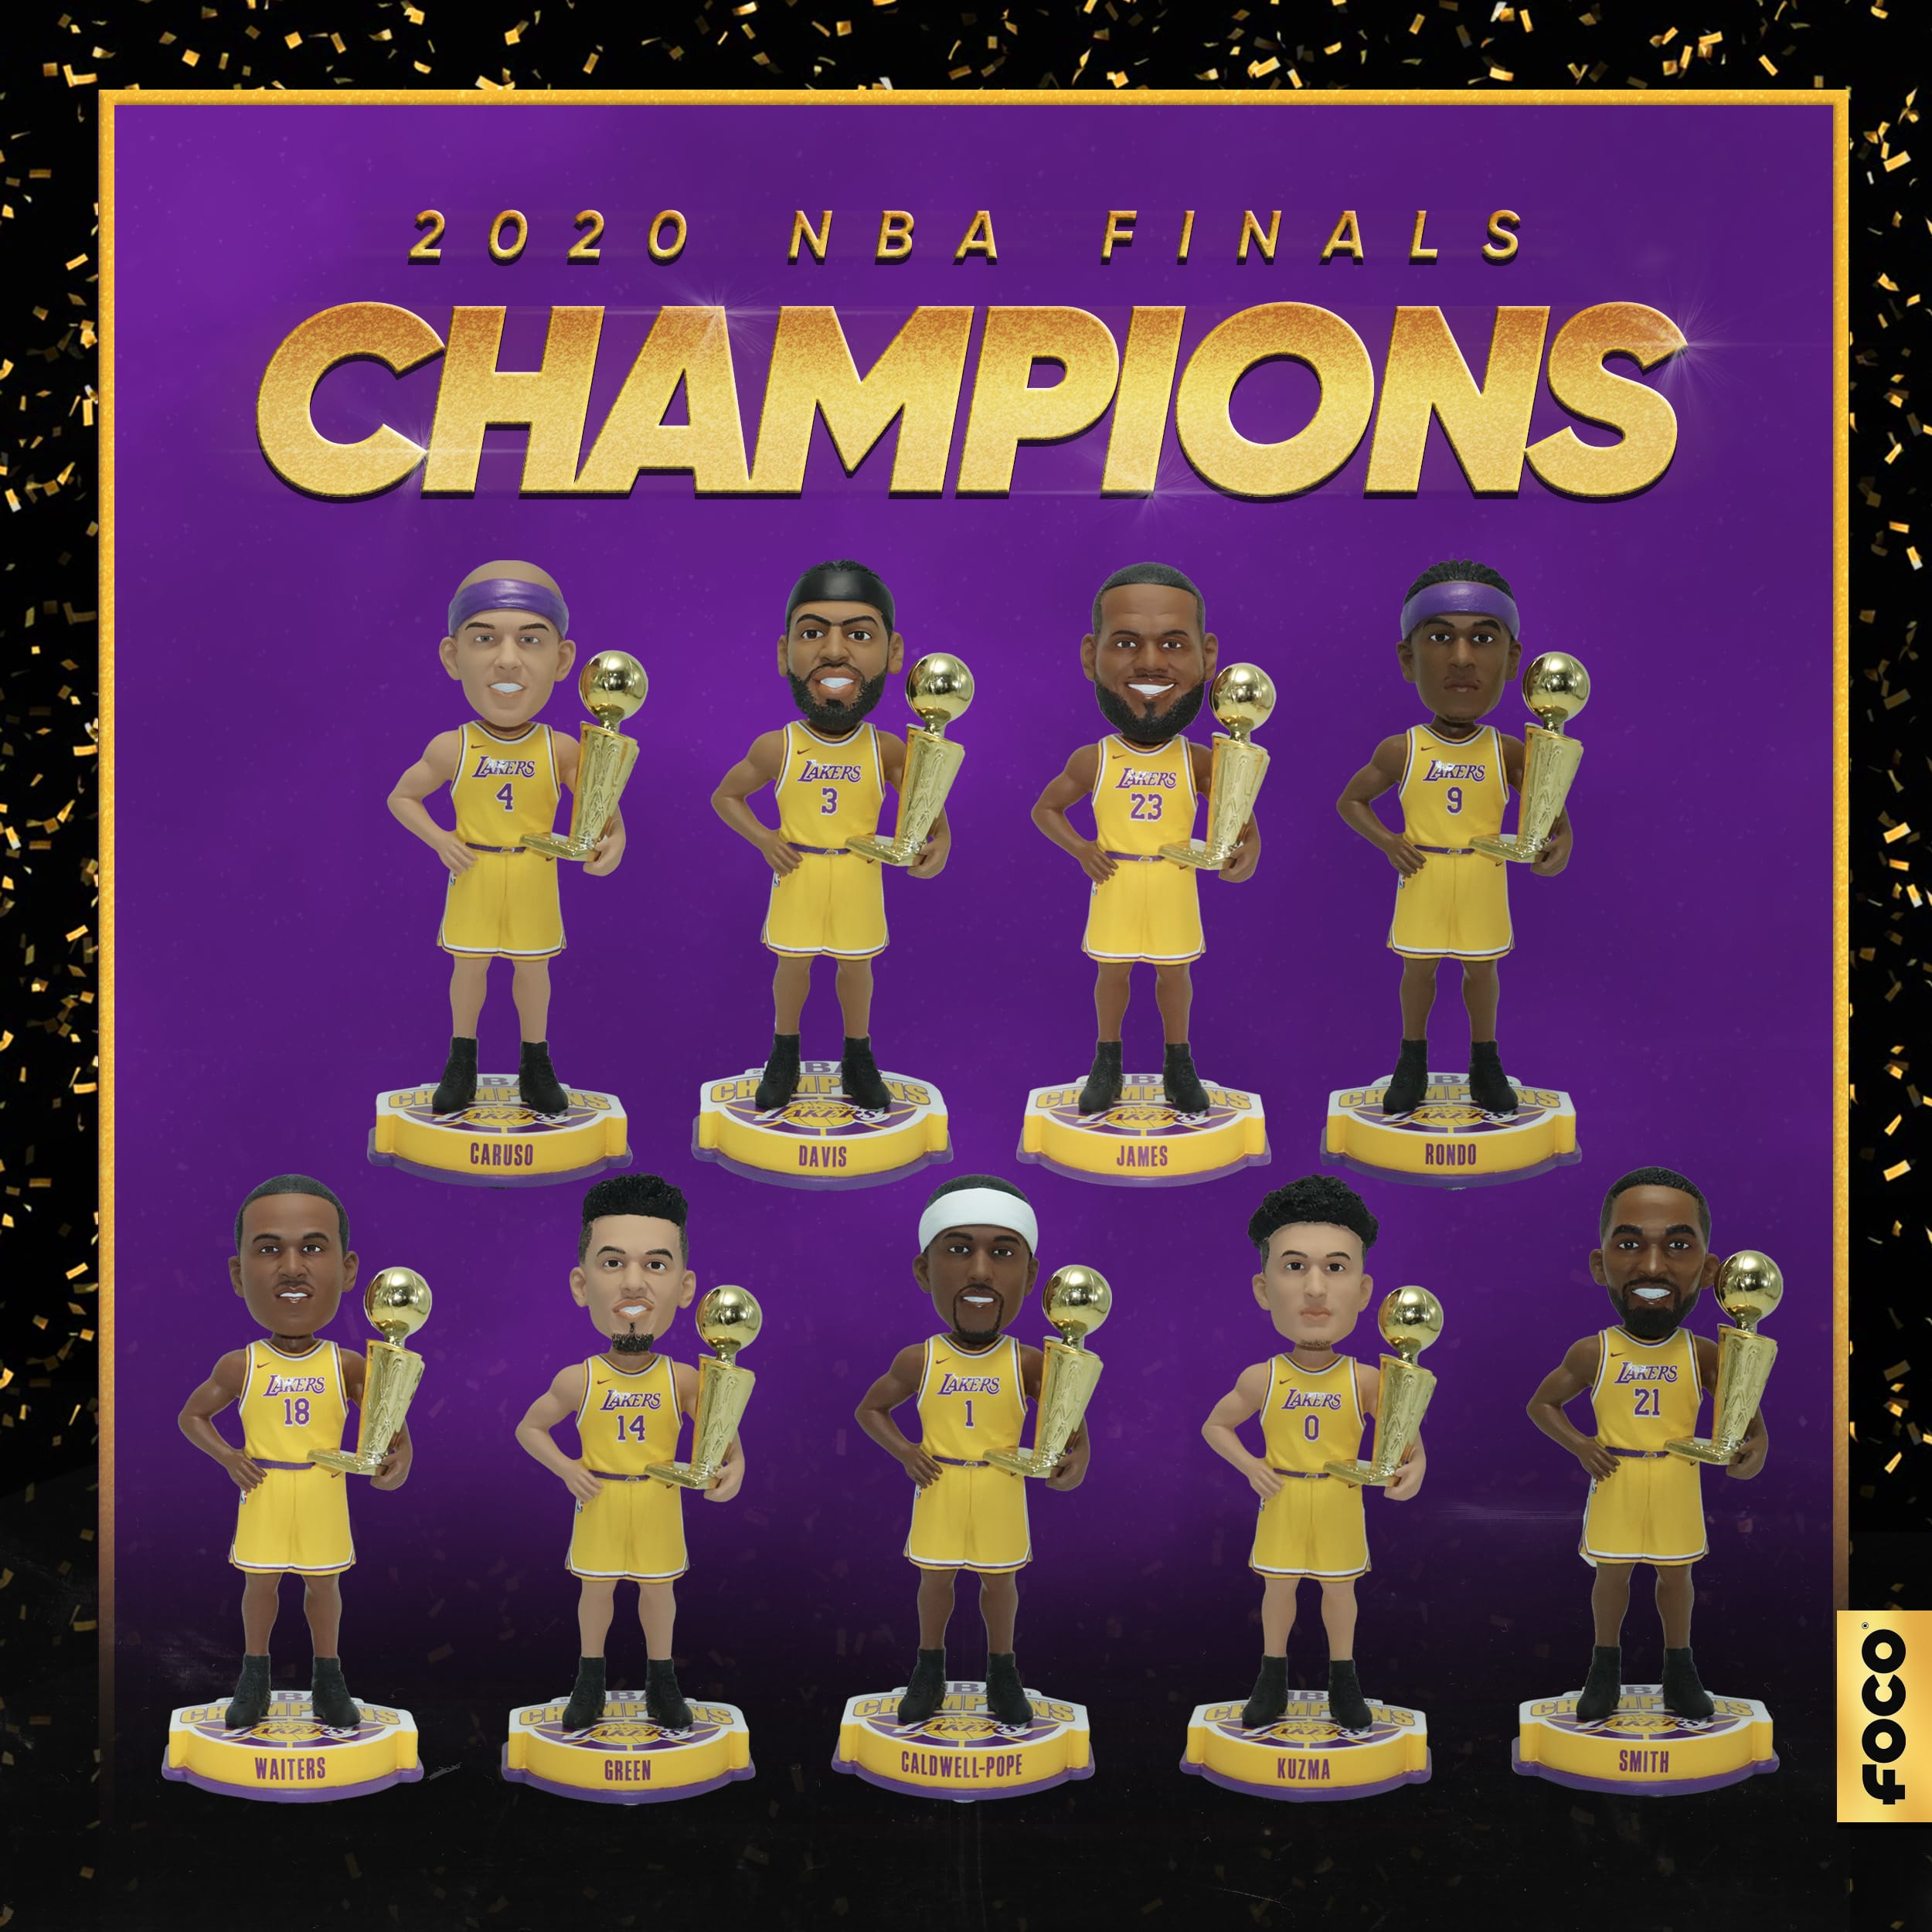 Celebrate the Los Angeles Lakers NBA Championship with new gear